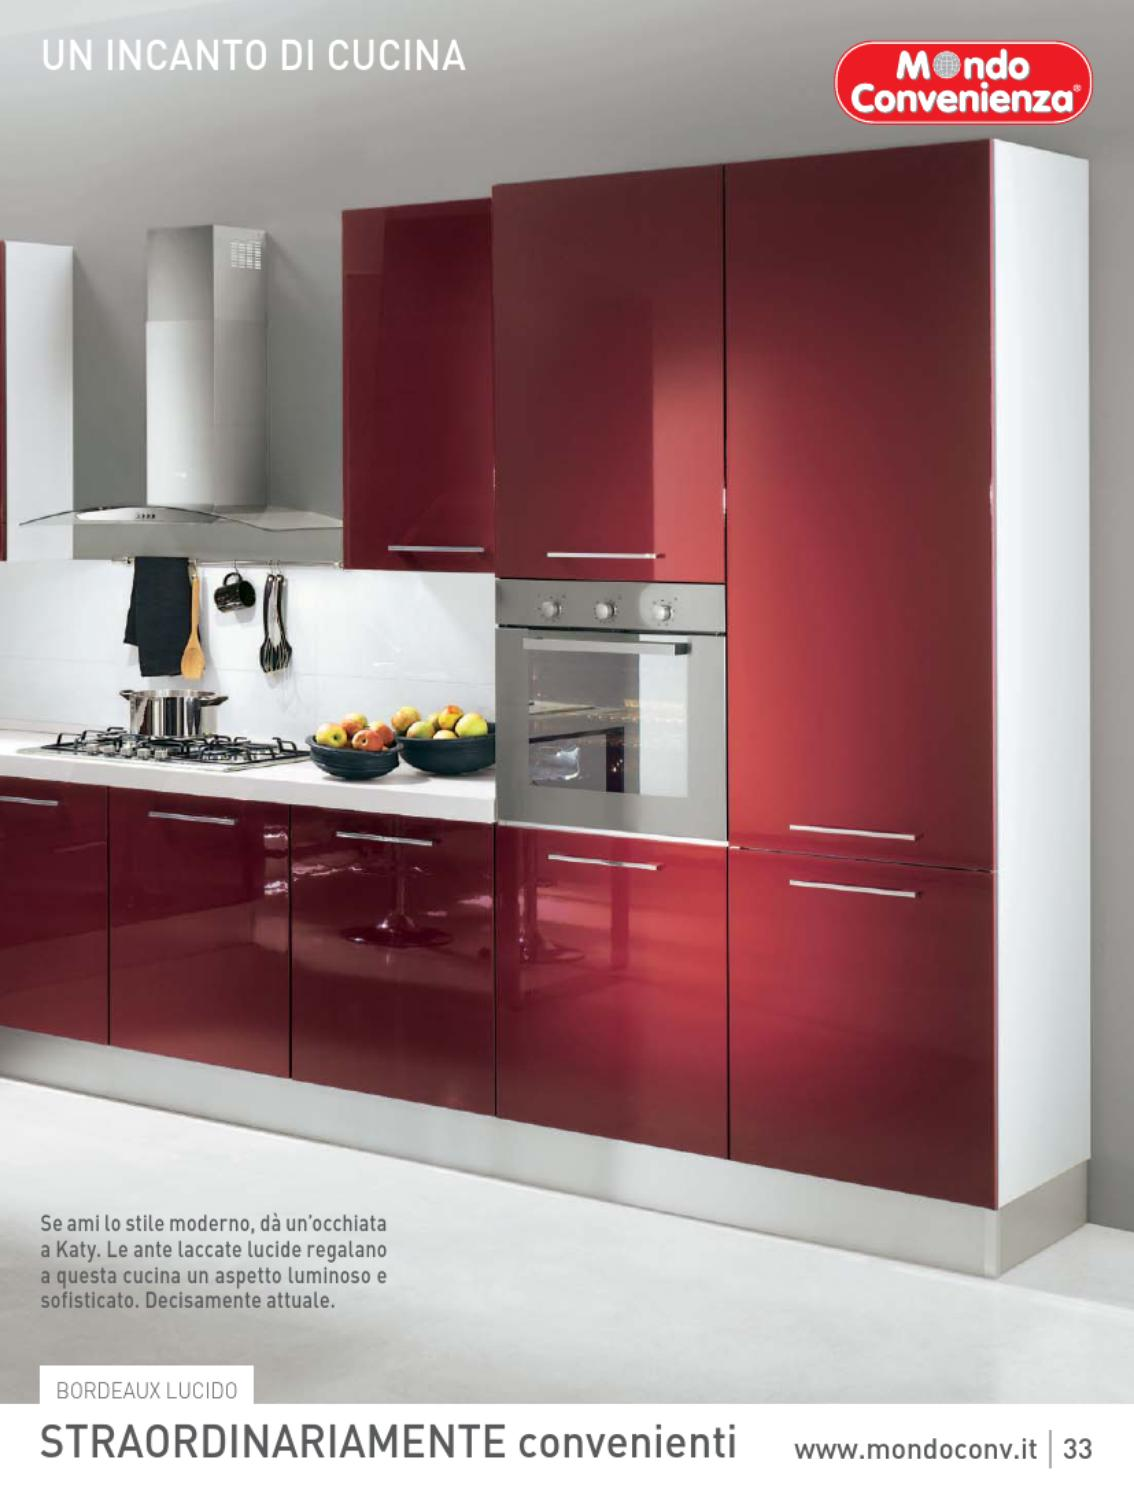 Stunning Cucina Katy Mondo Convenienza Images - Skilifts.us ...